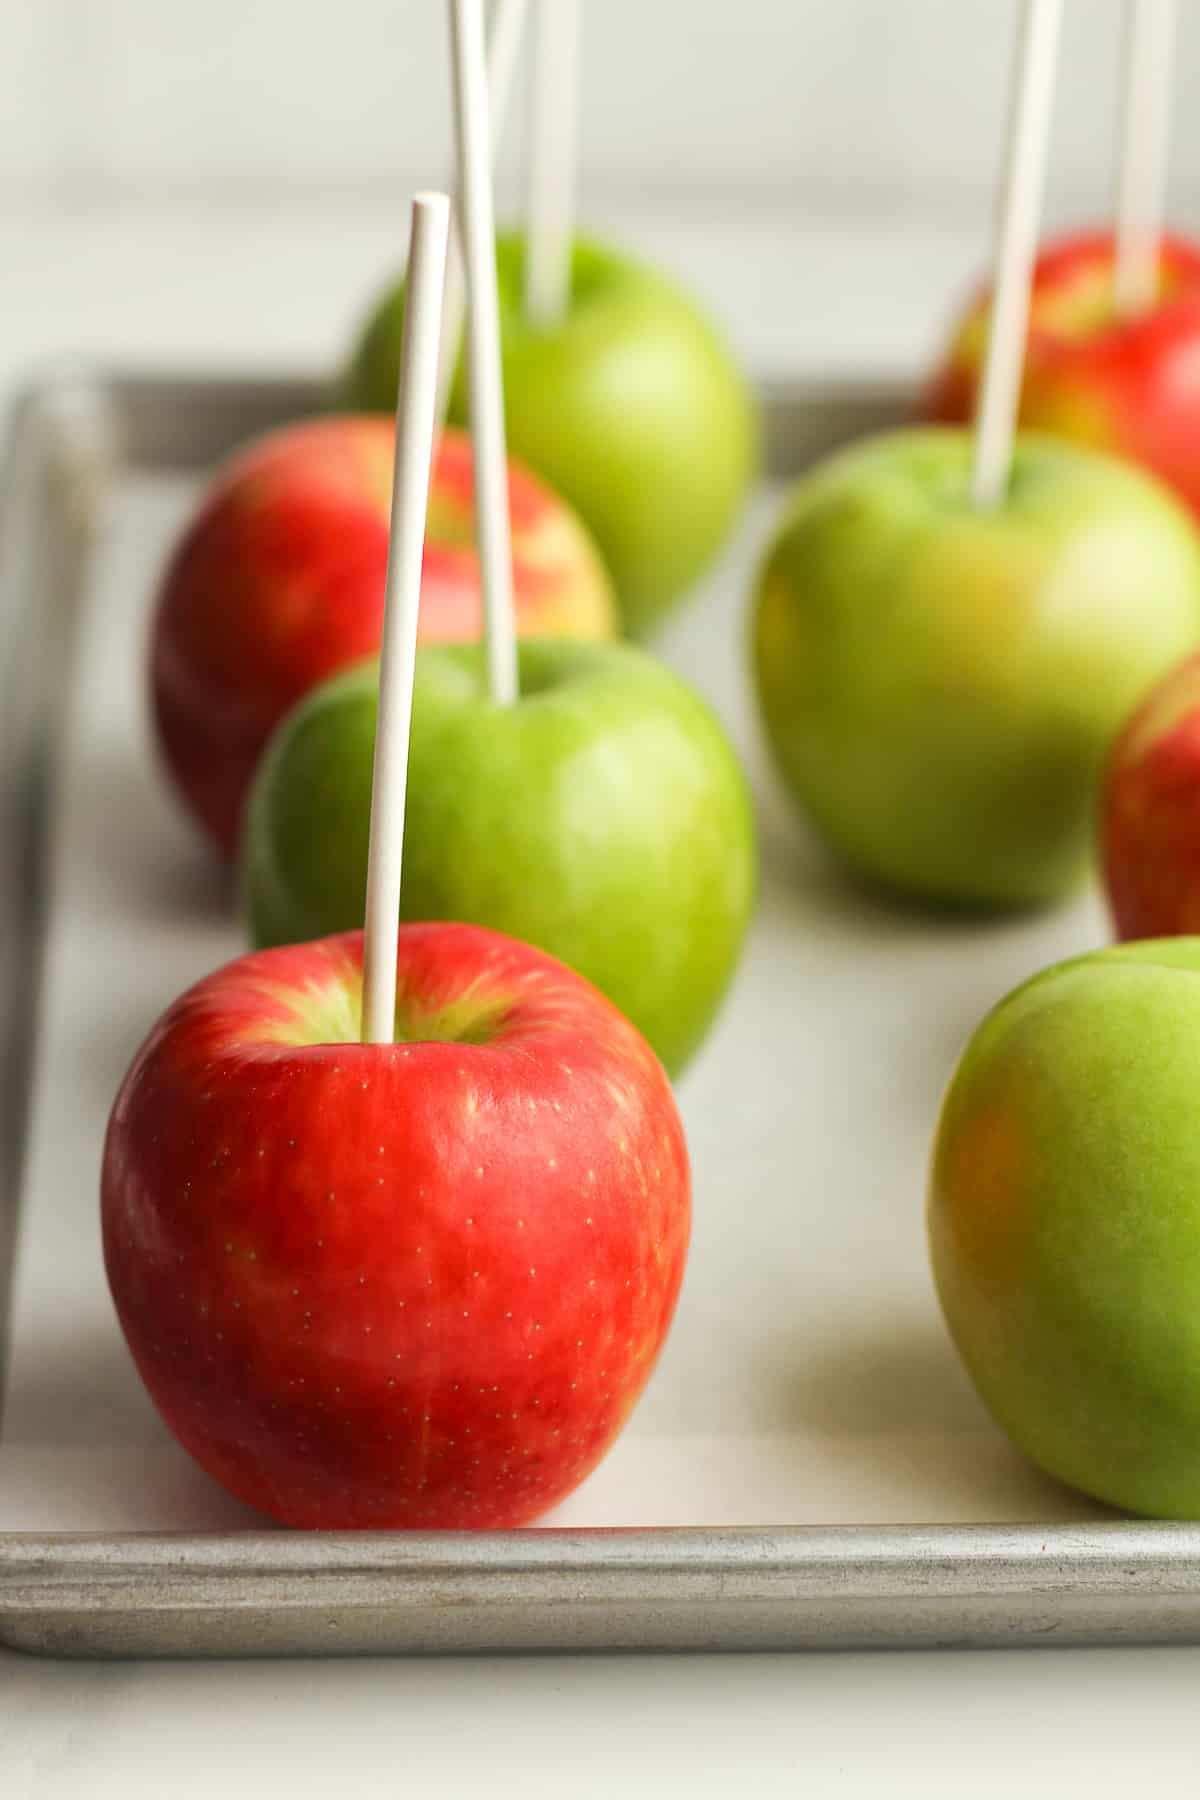 A tray of green and red apples on a pan.